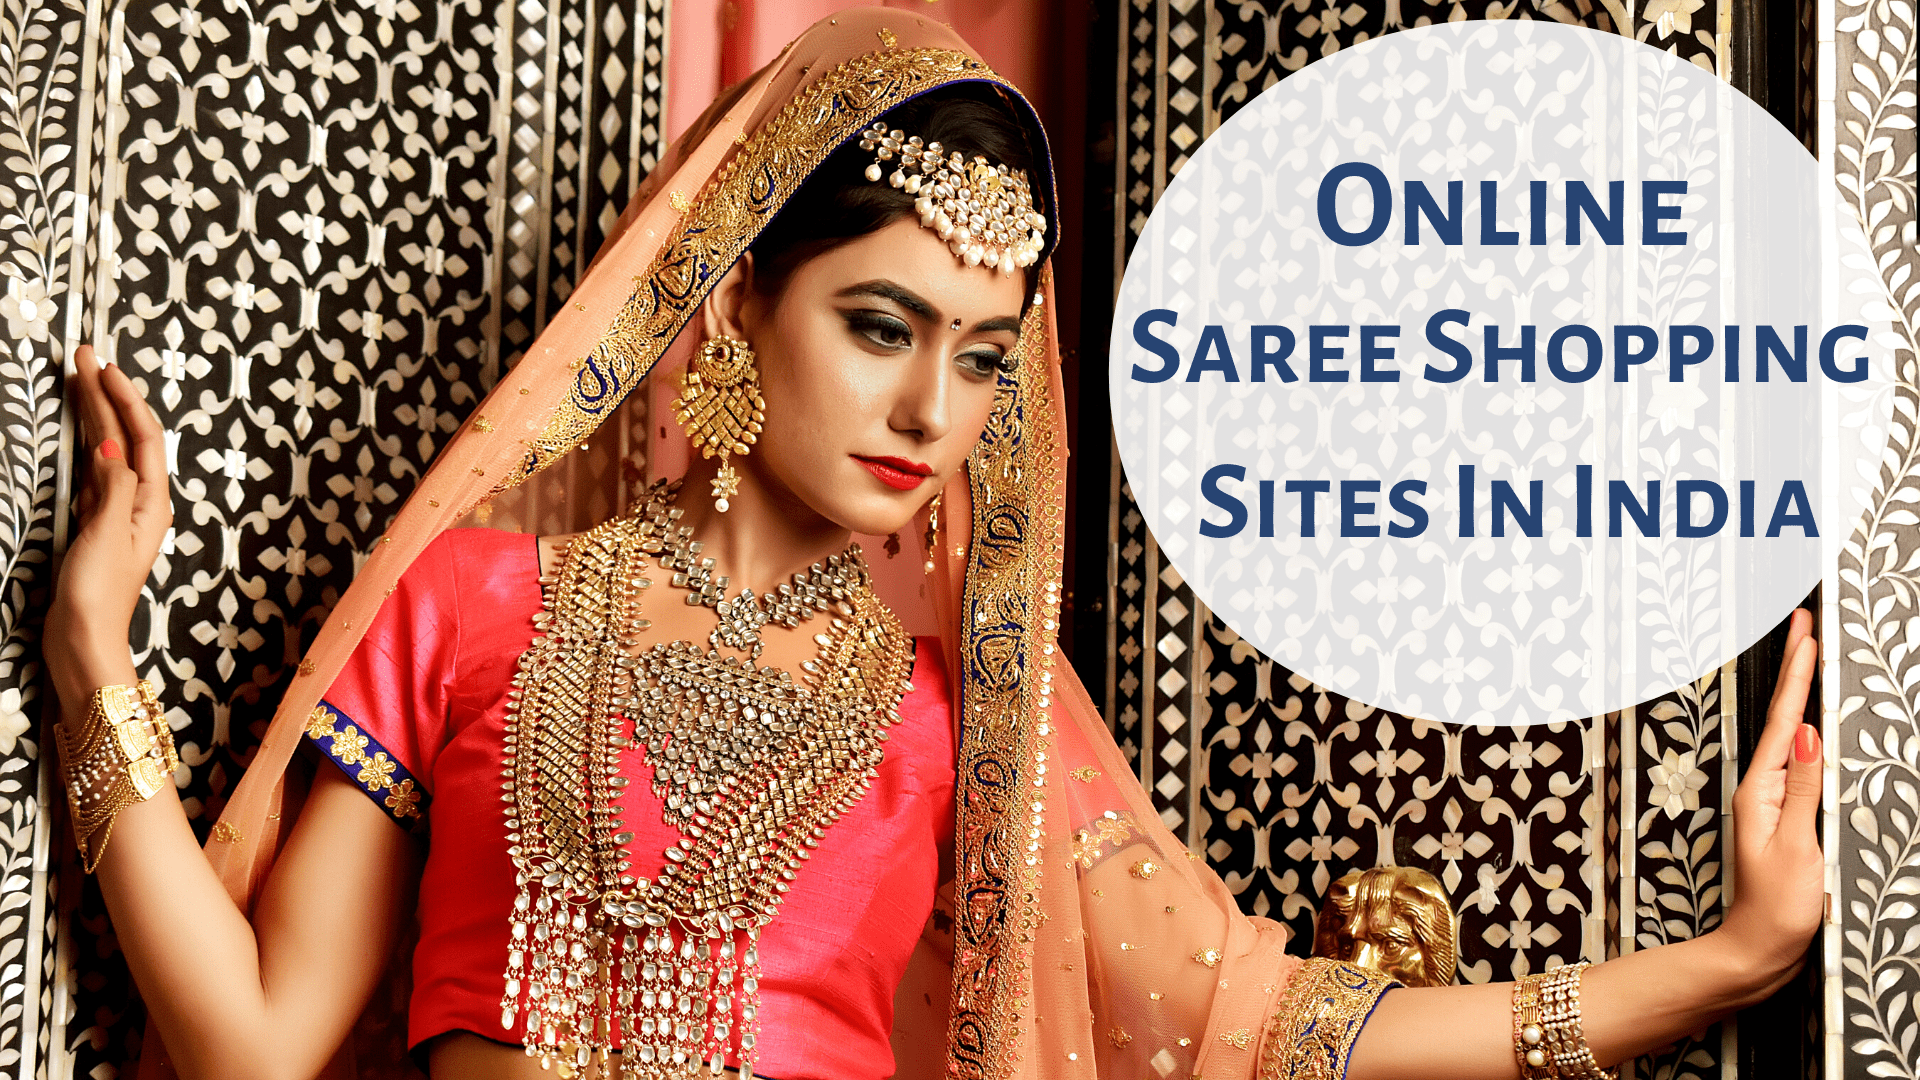 Online Saree Shopping Sites In India